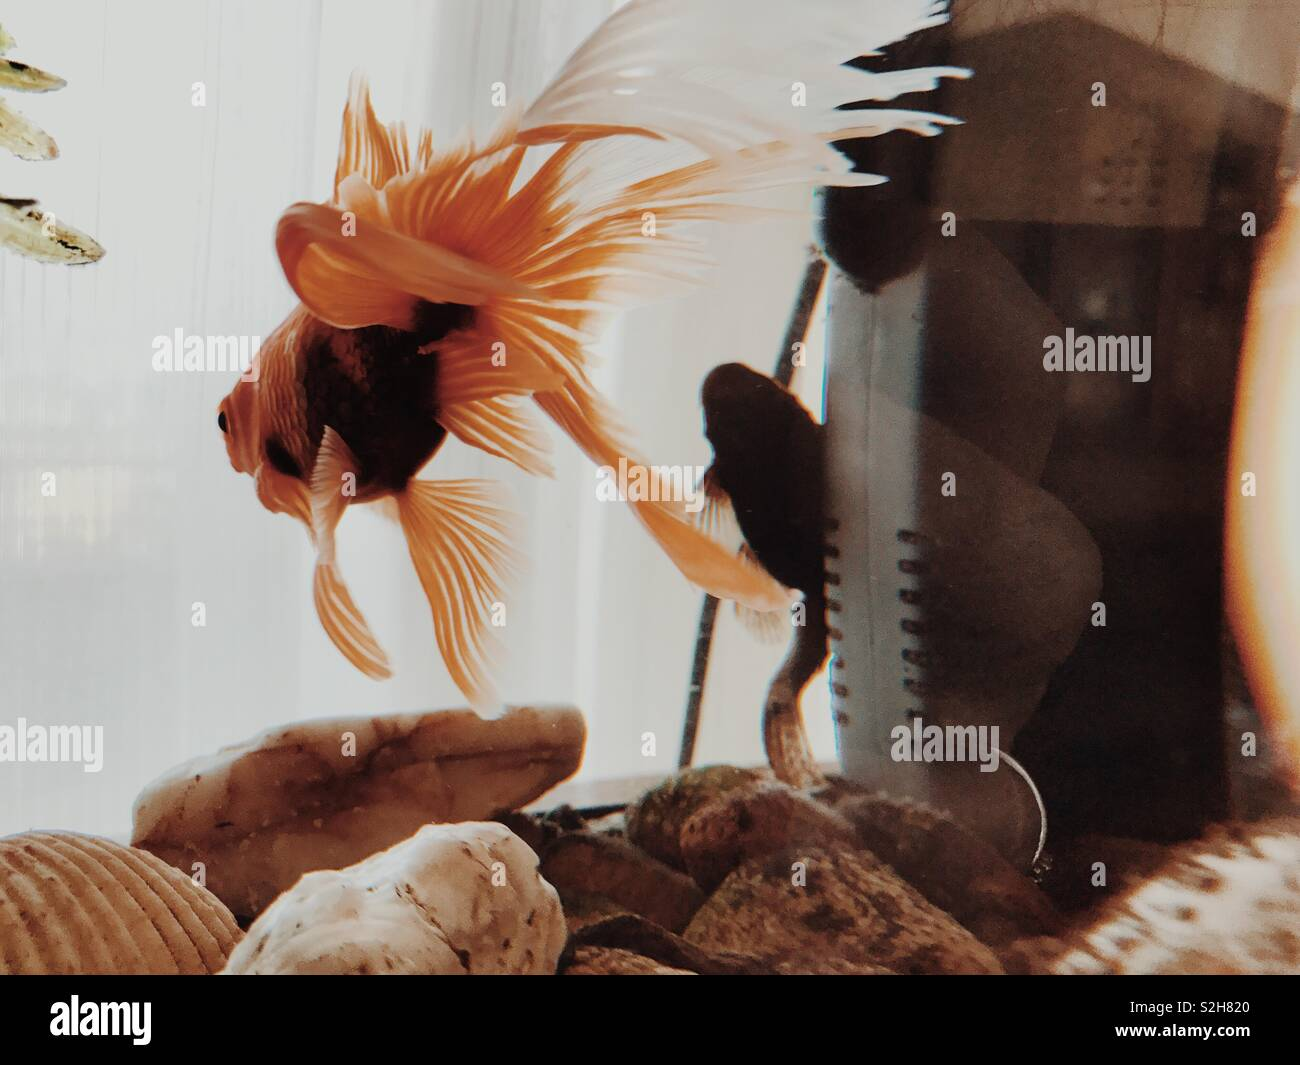 a fish - Stock Image